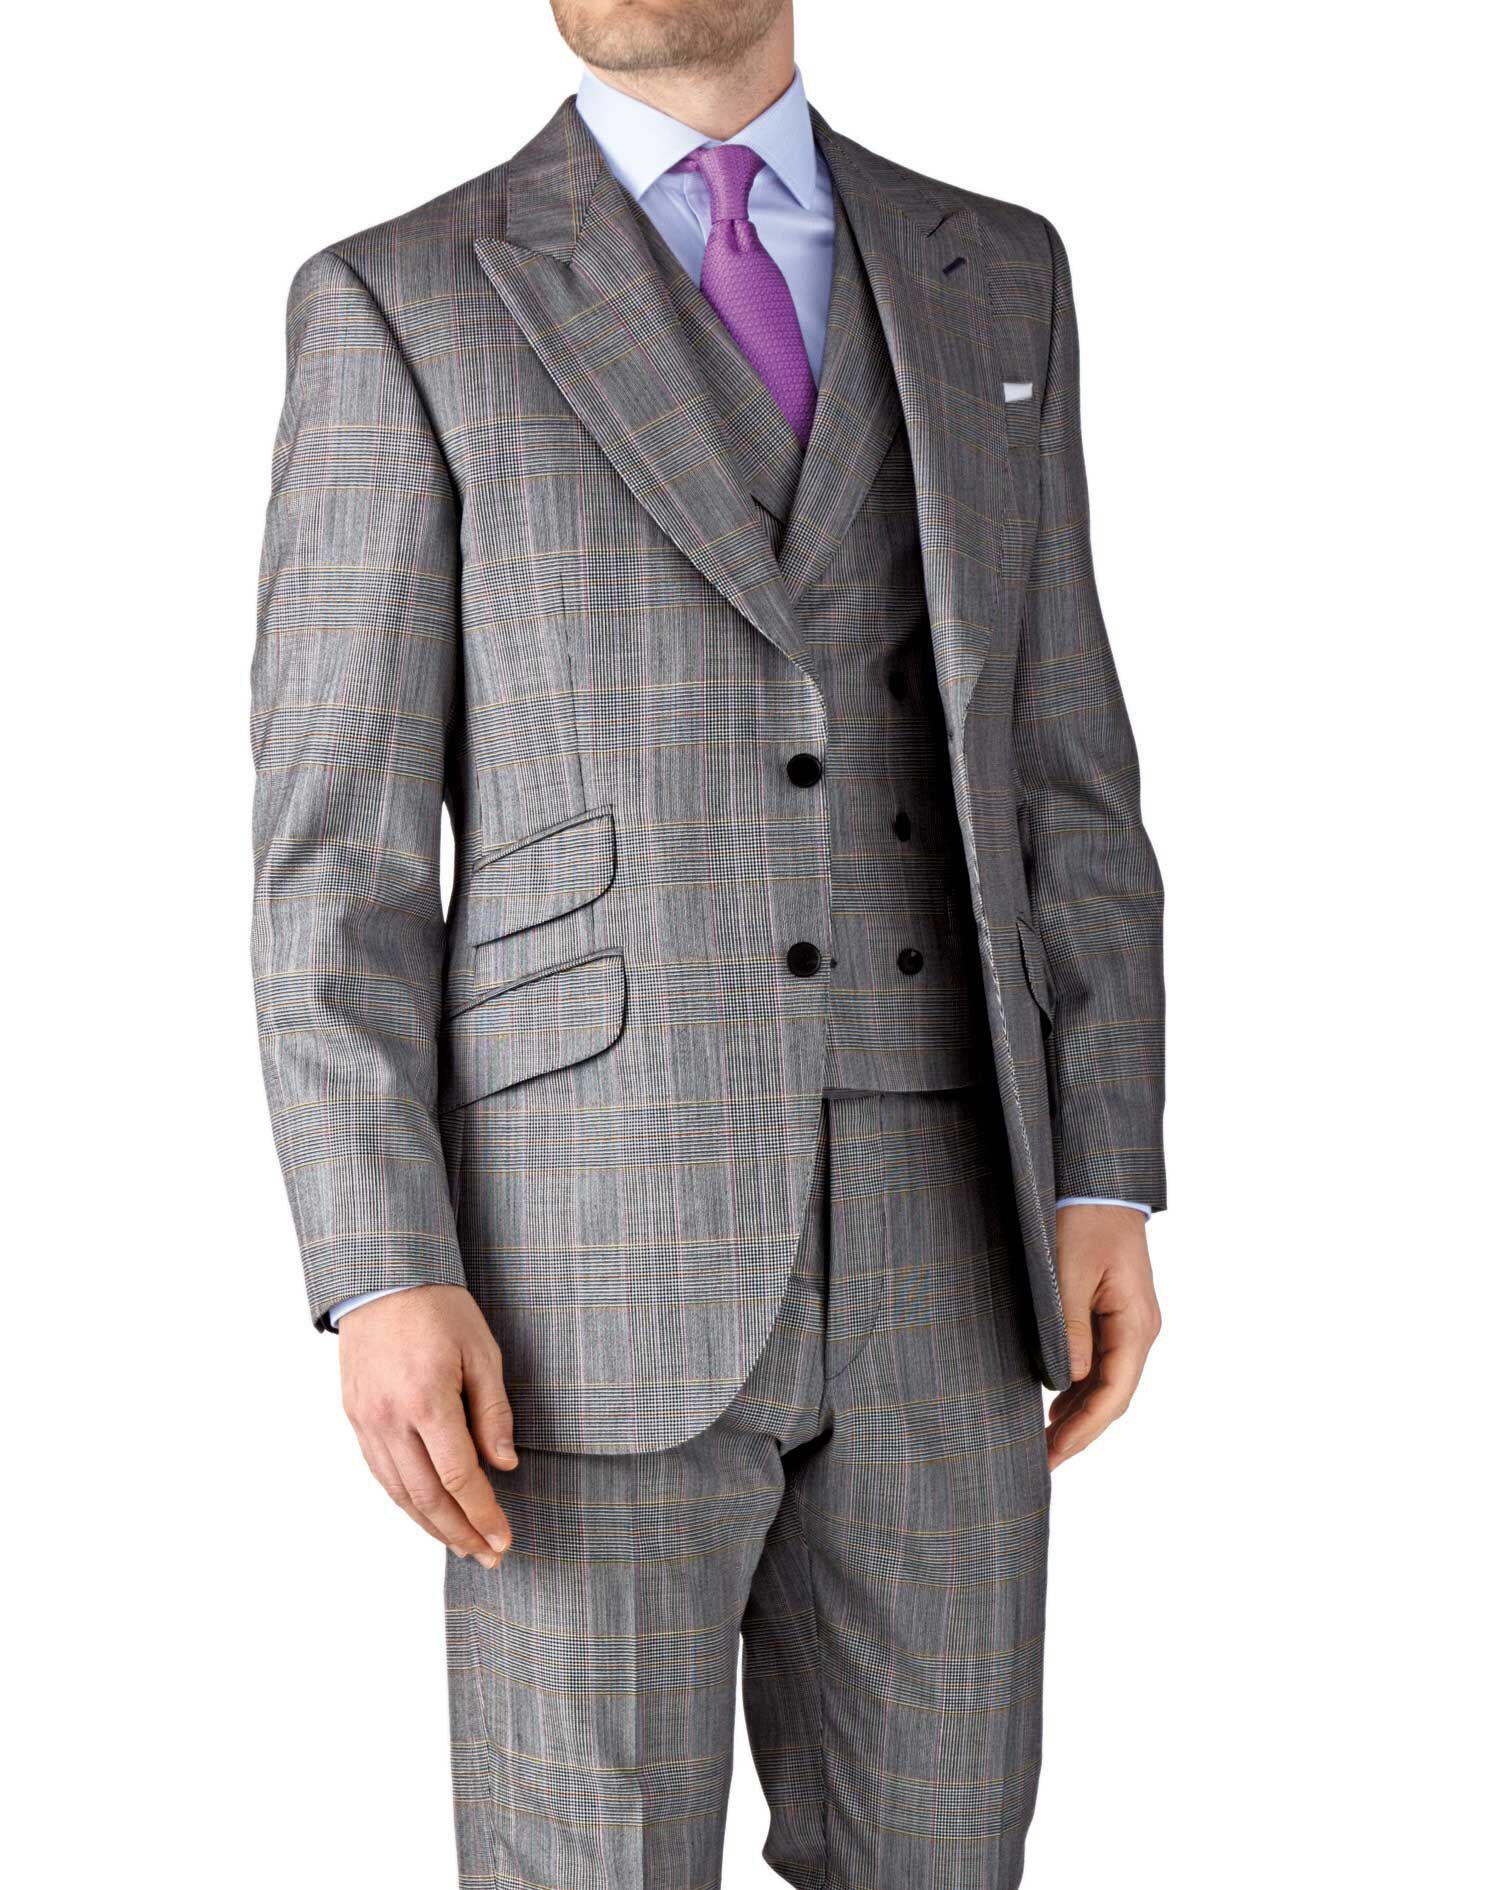 Grey Check Slim Fit British Panama Luxury Suit Wool Jacket Size 36 Regular by Charles Tyrwhitt